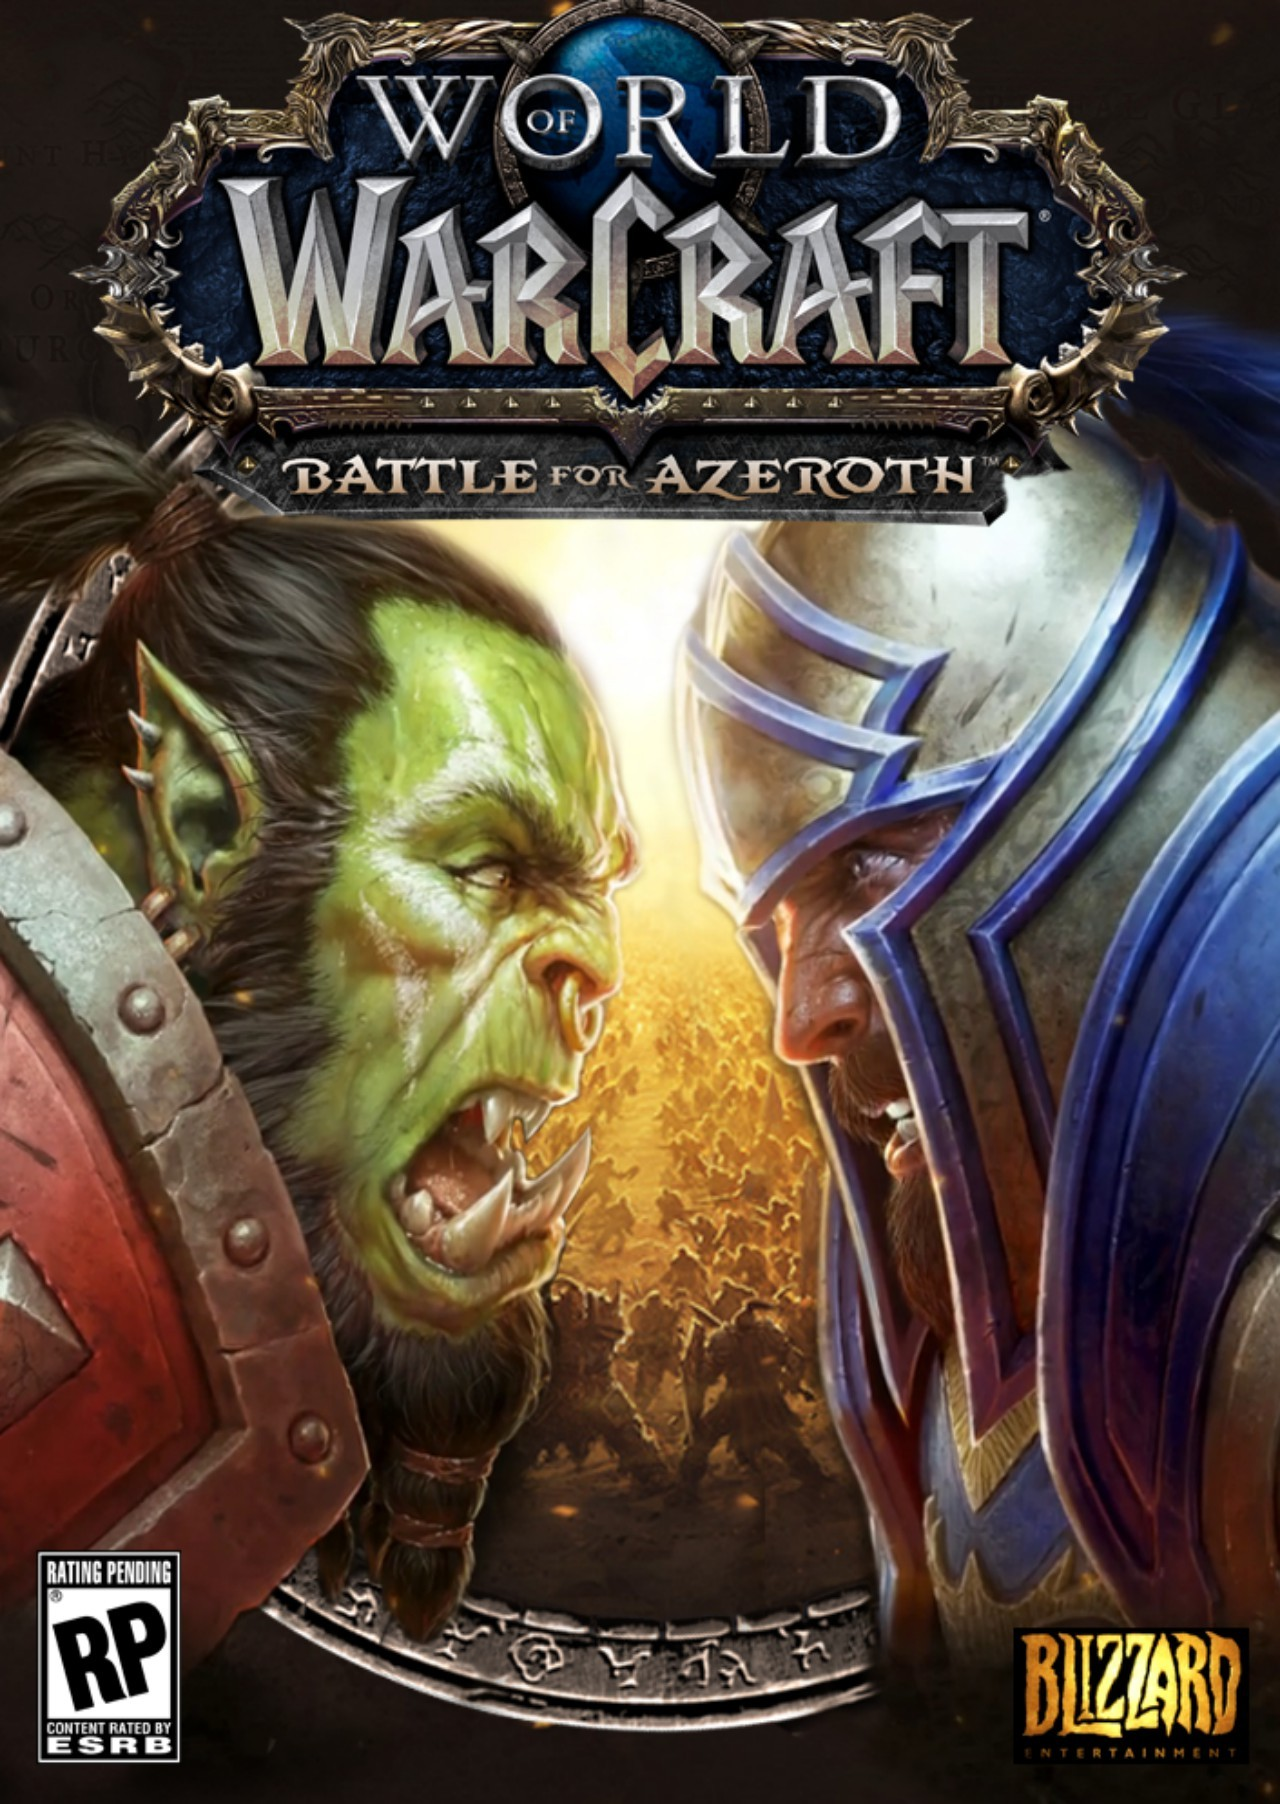 WOW: BATTLE FOR AZEROTH?(RU)+LVL 110